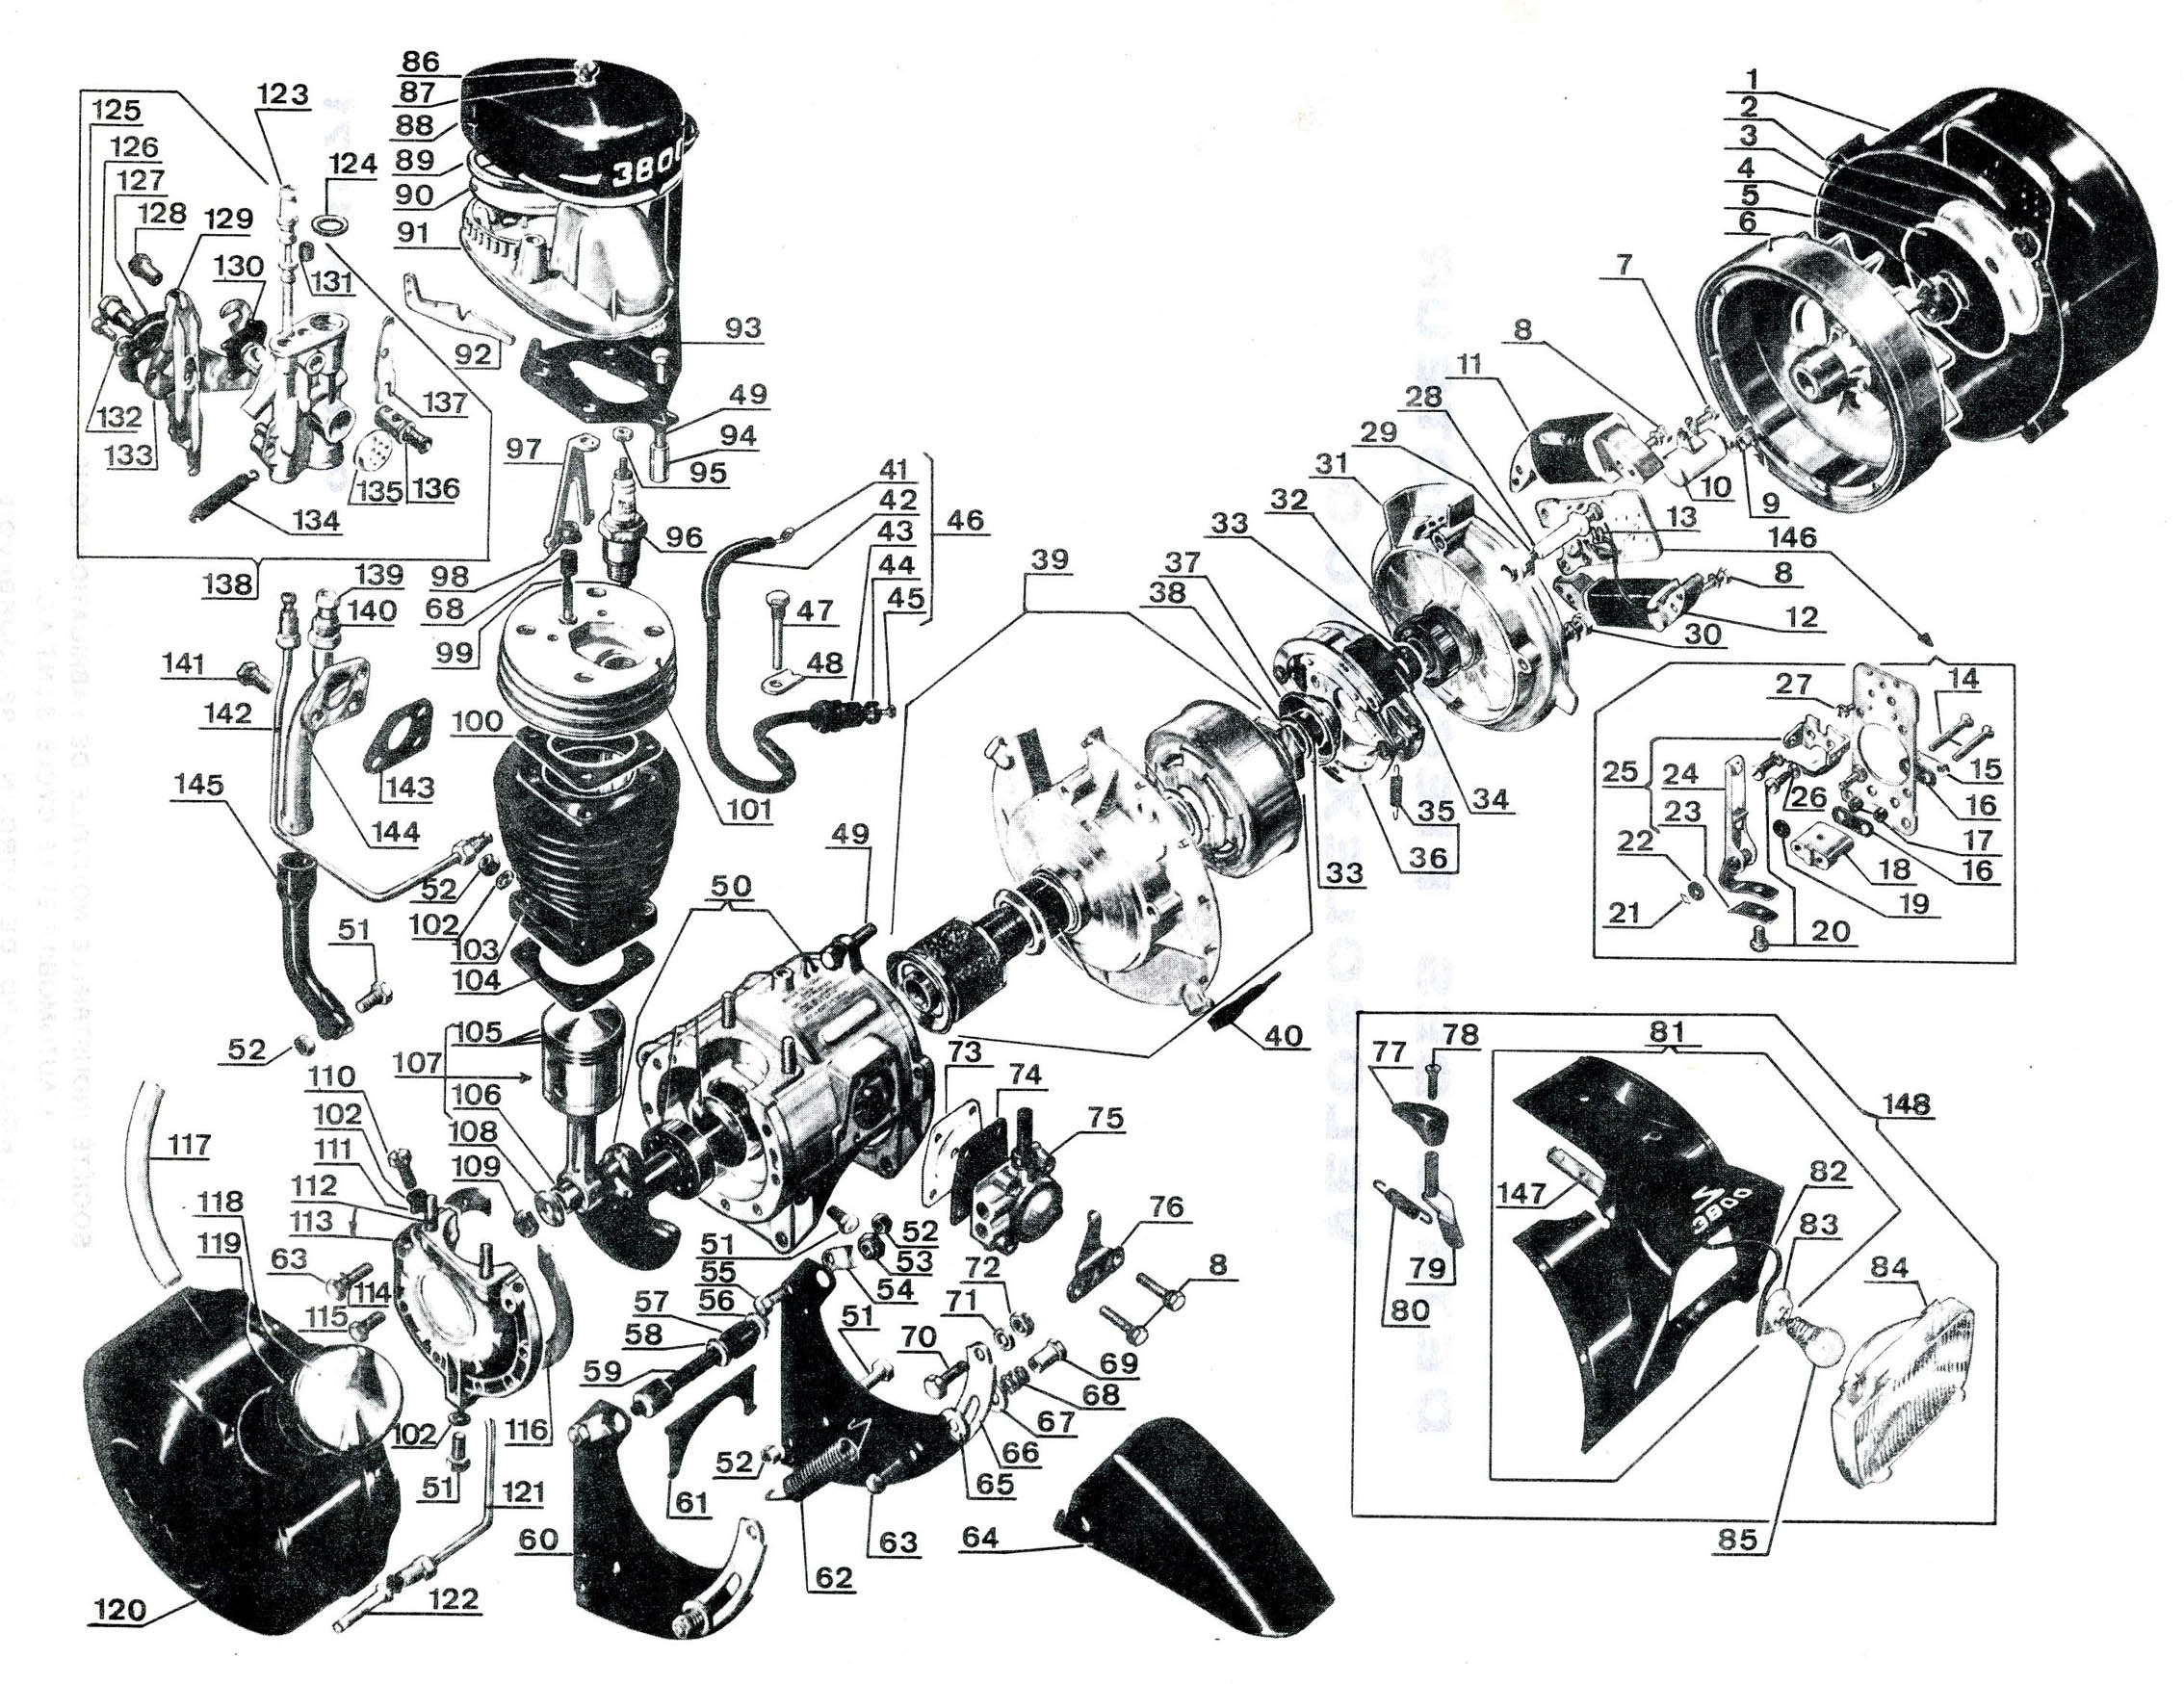 [DIAGRAM] Bmw N52 Engine Diagram FULL Version HD Quality